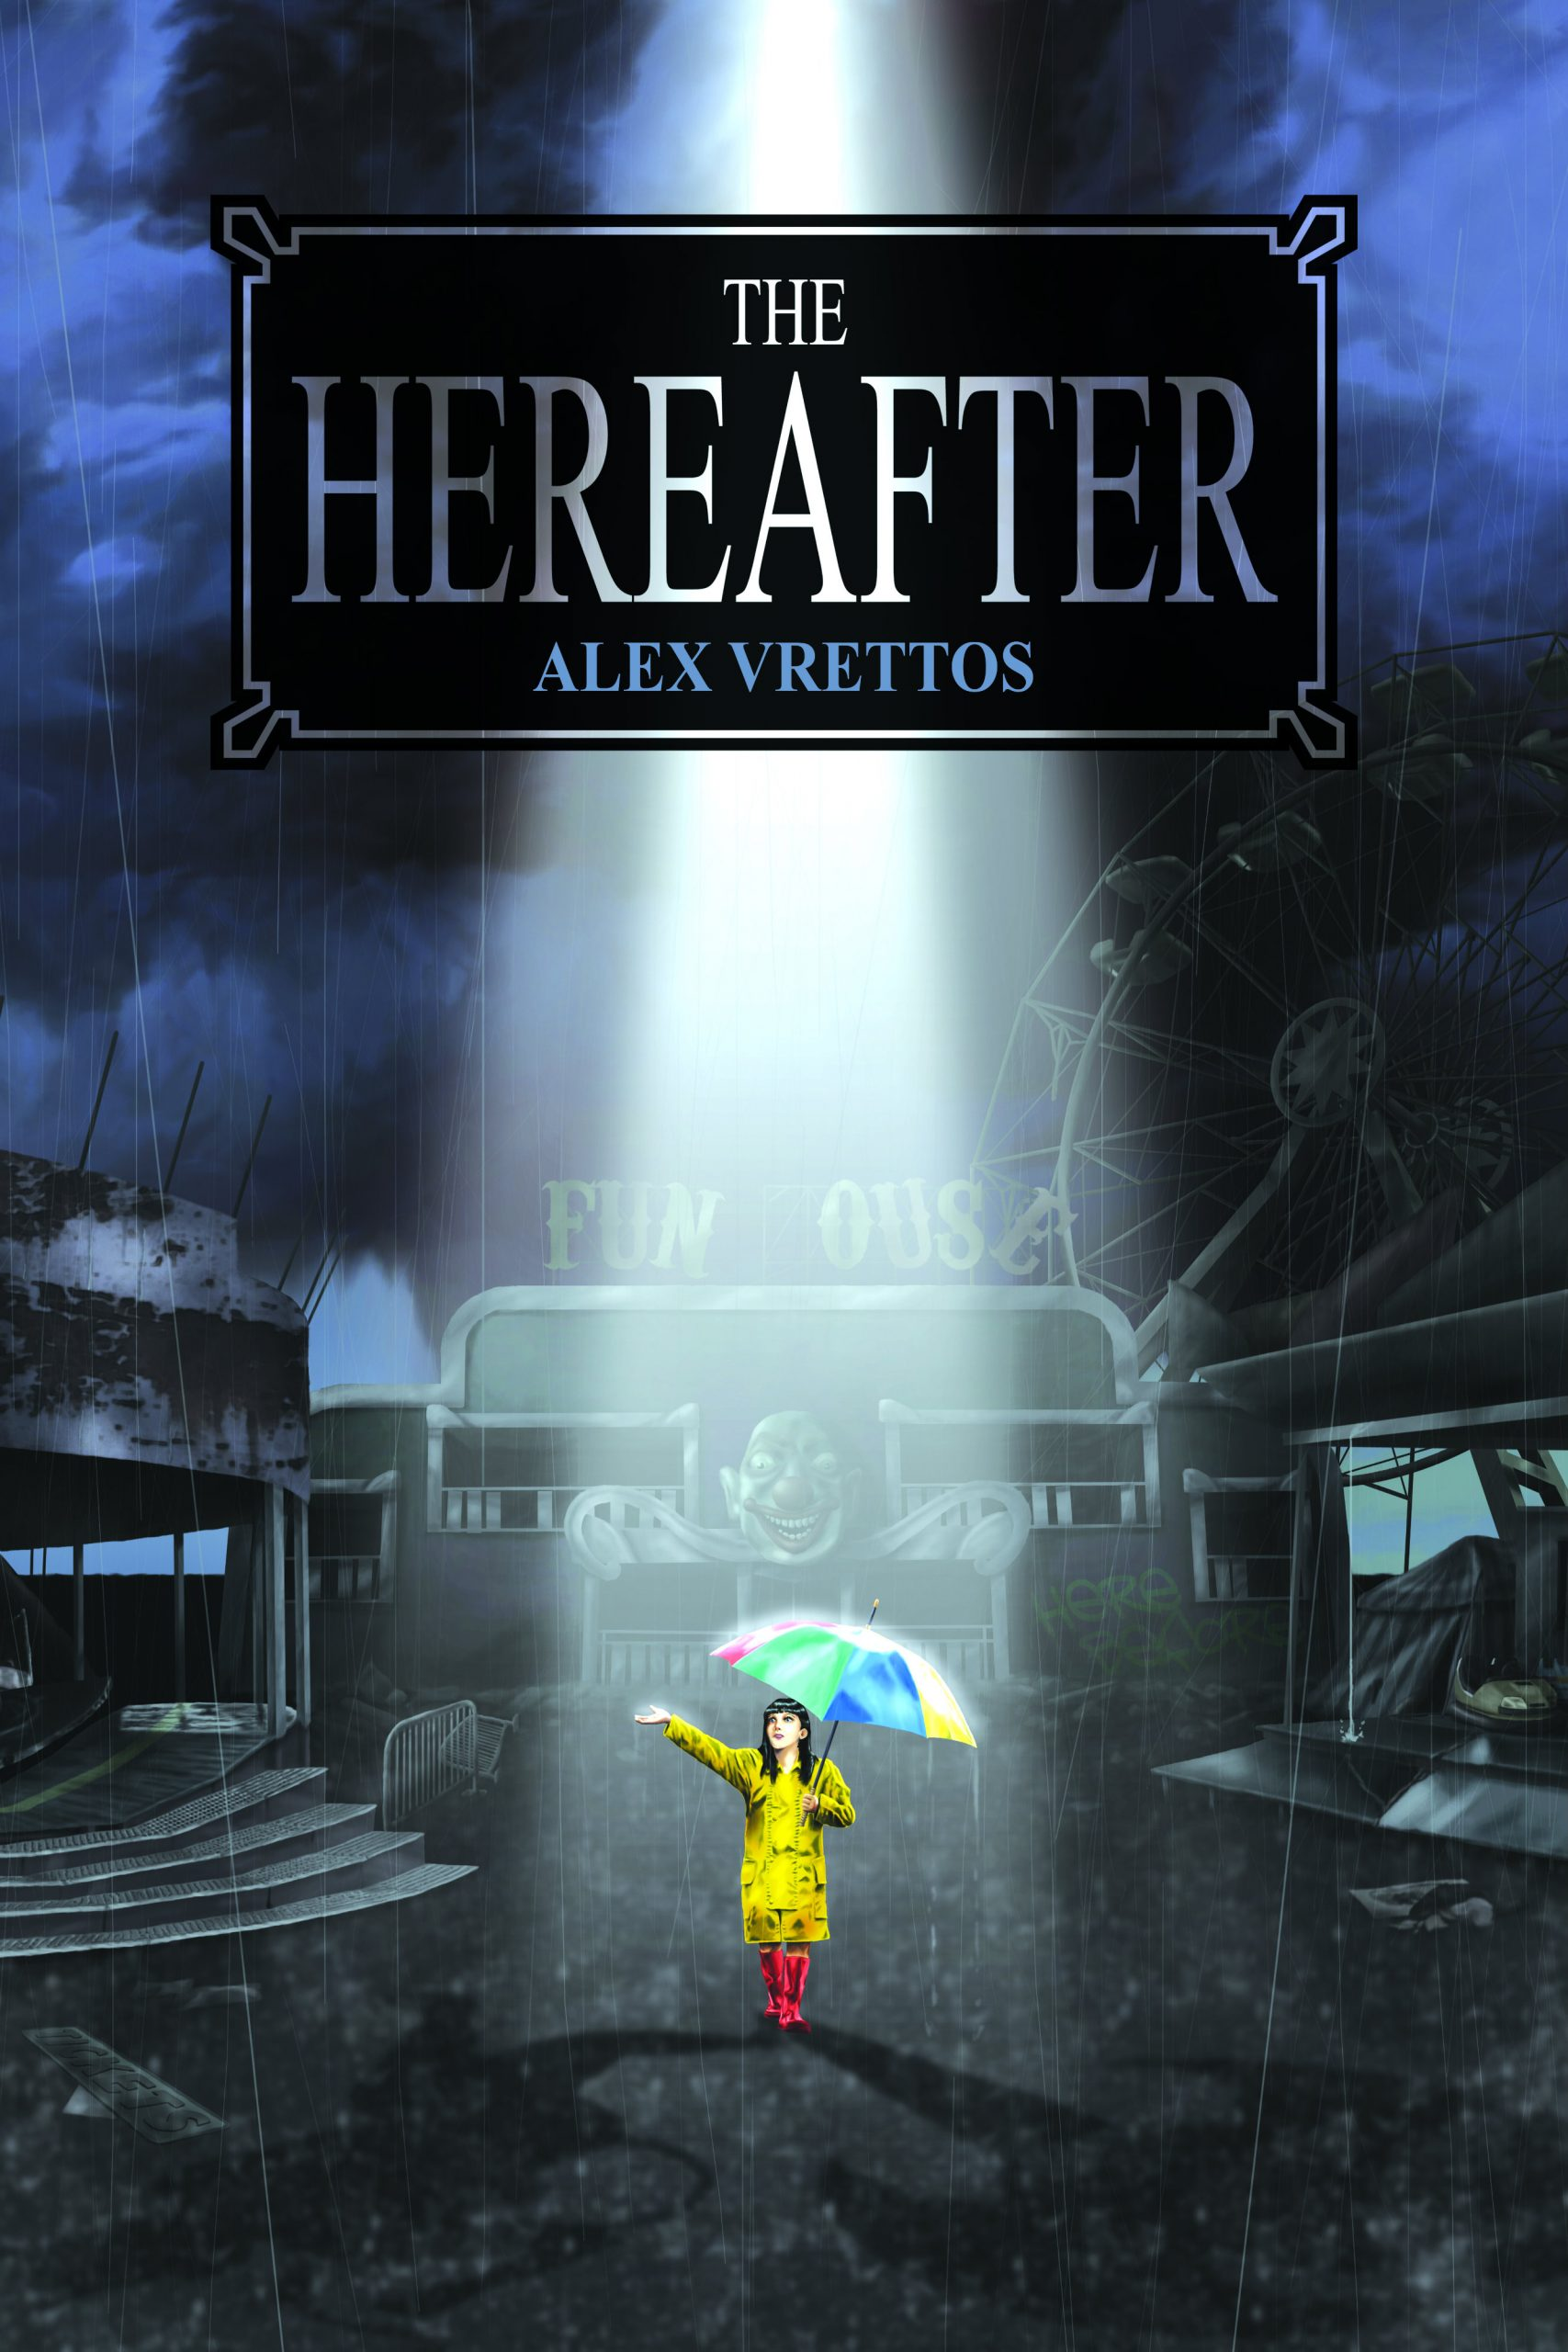 The Hereafter